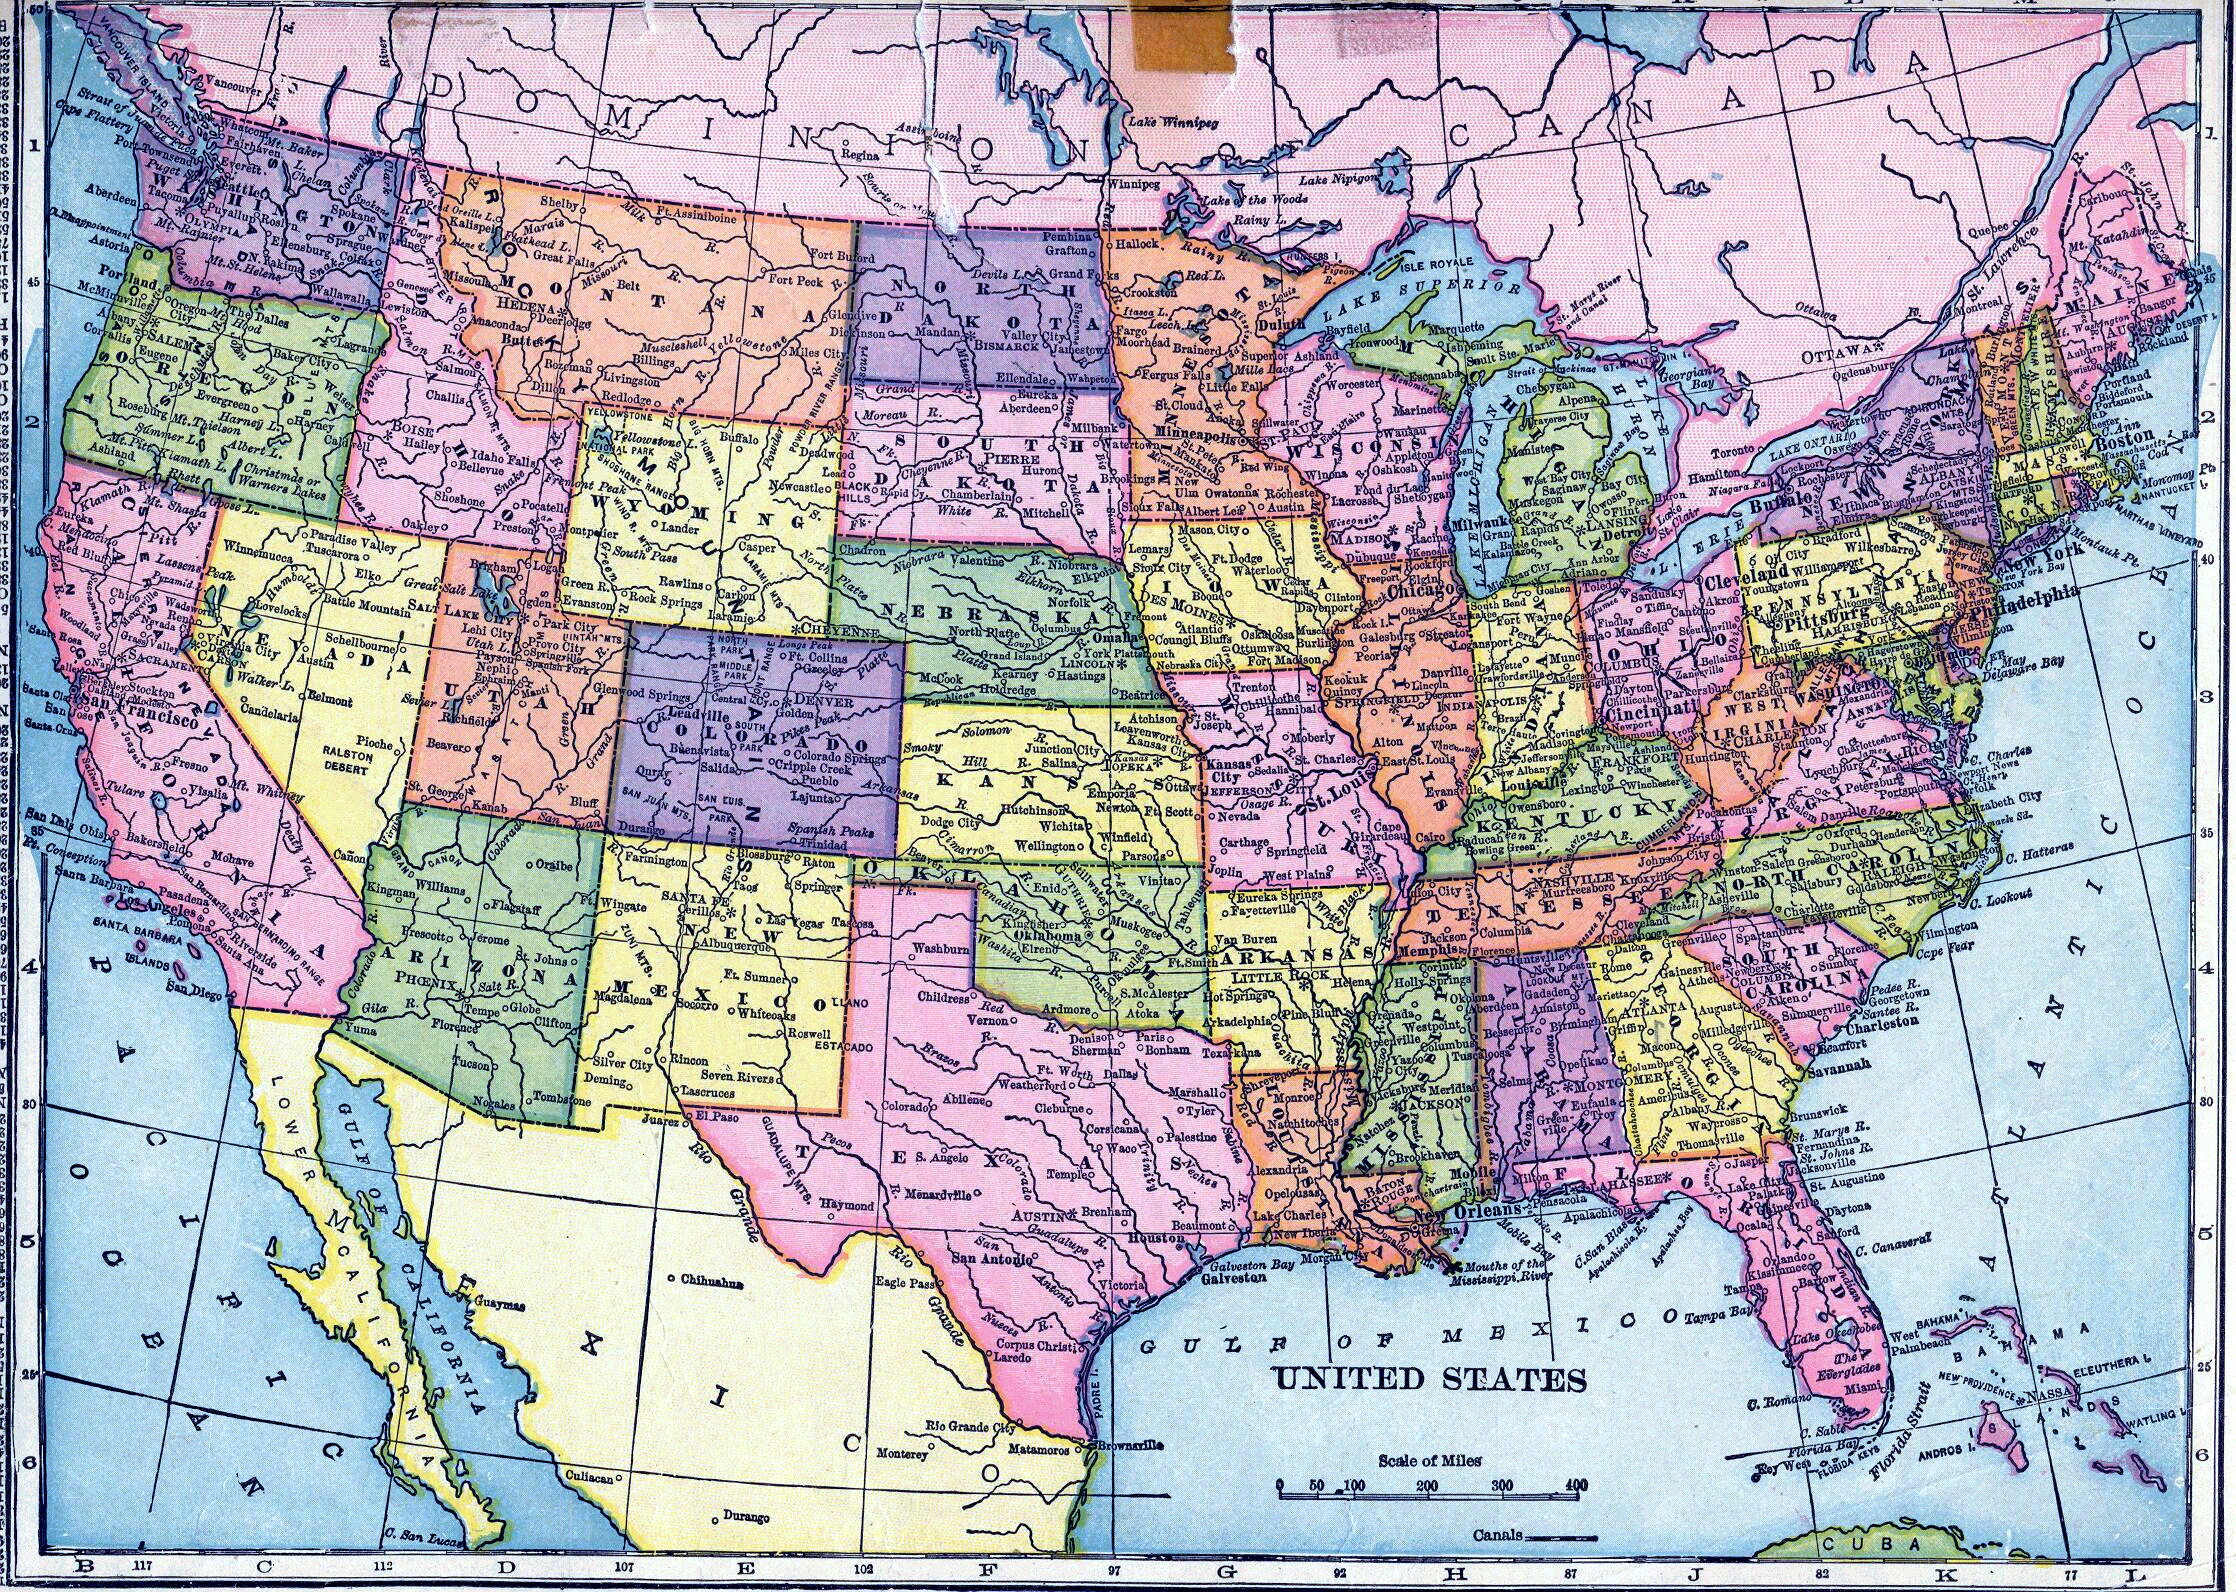 USA Map Print Out A Blank Map Of The US And Have The Kids Color - Map of us roads and cities